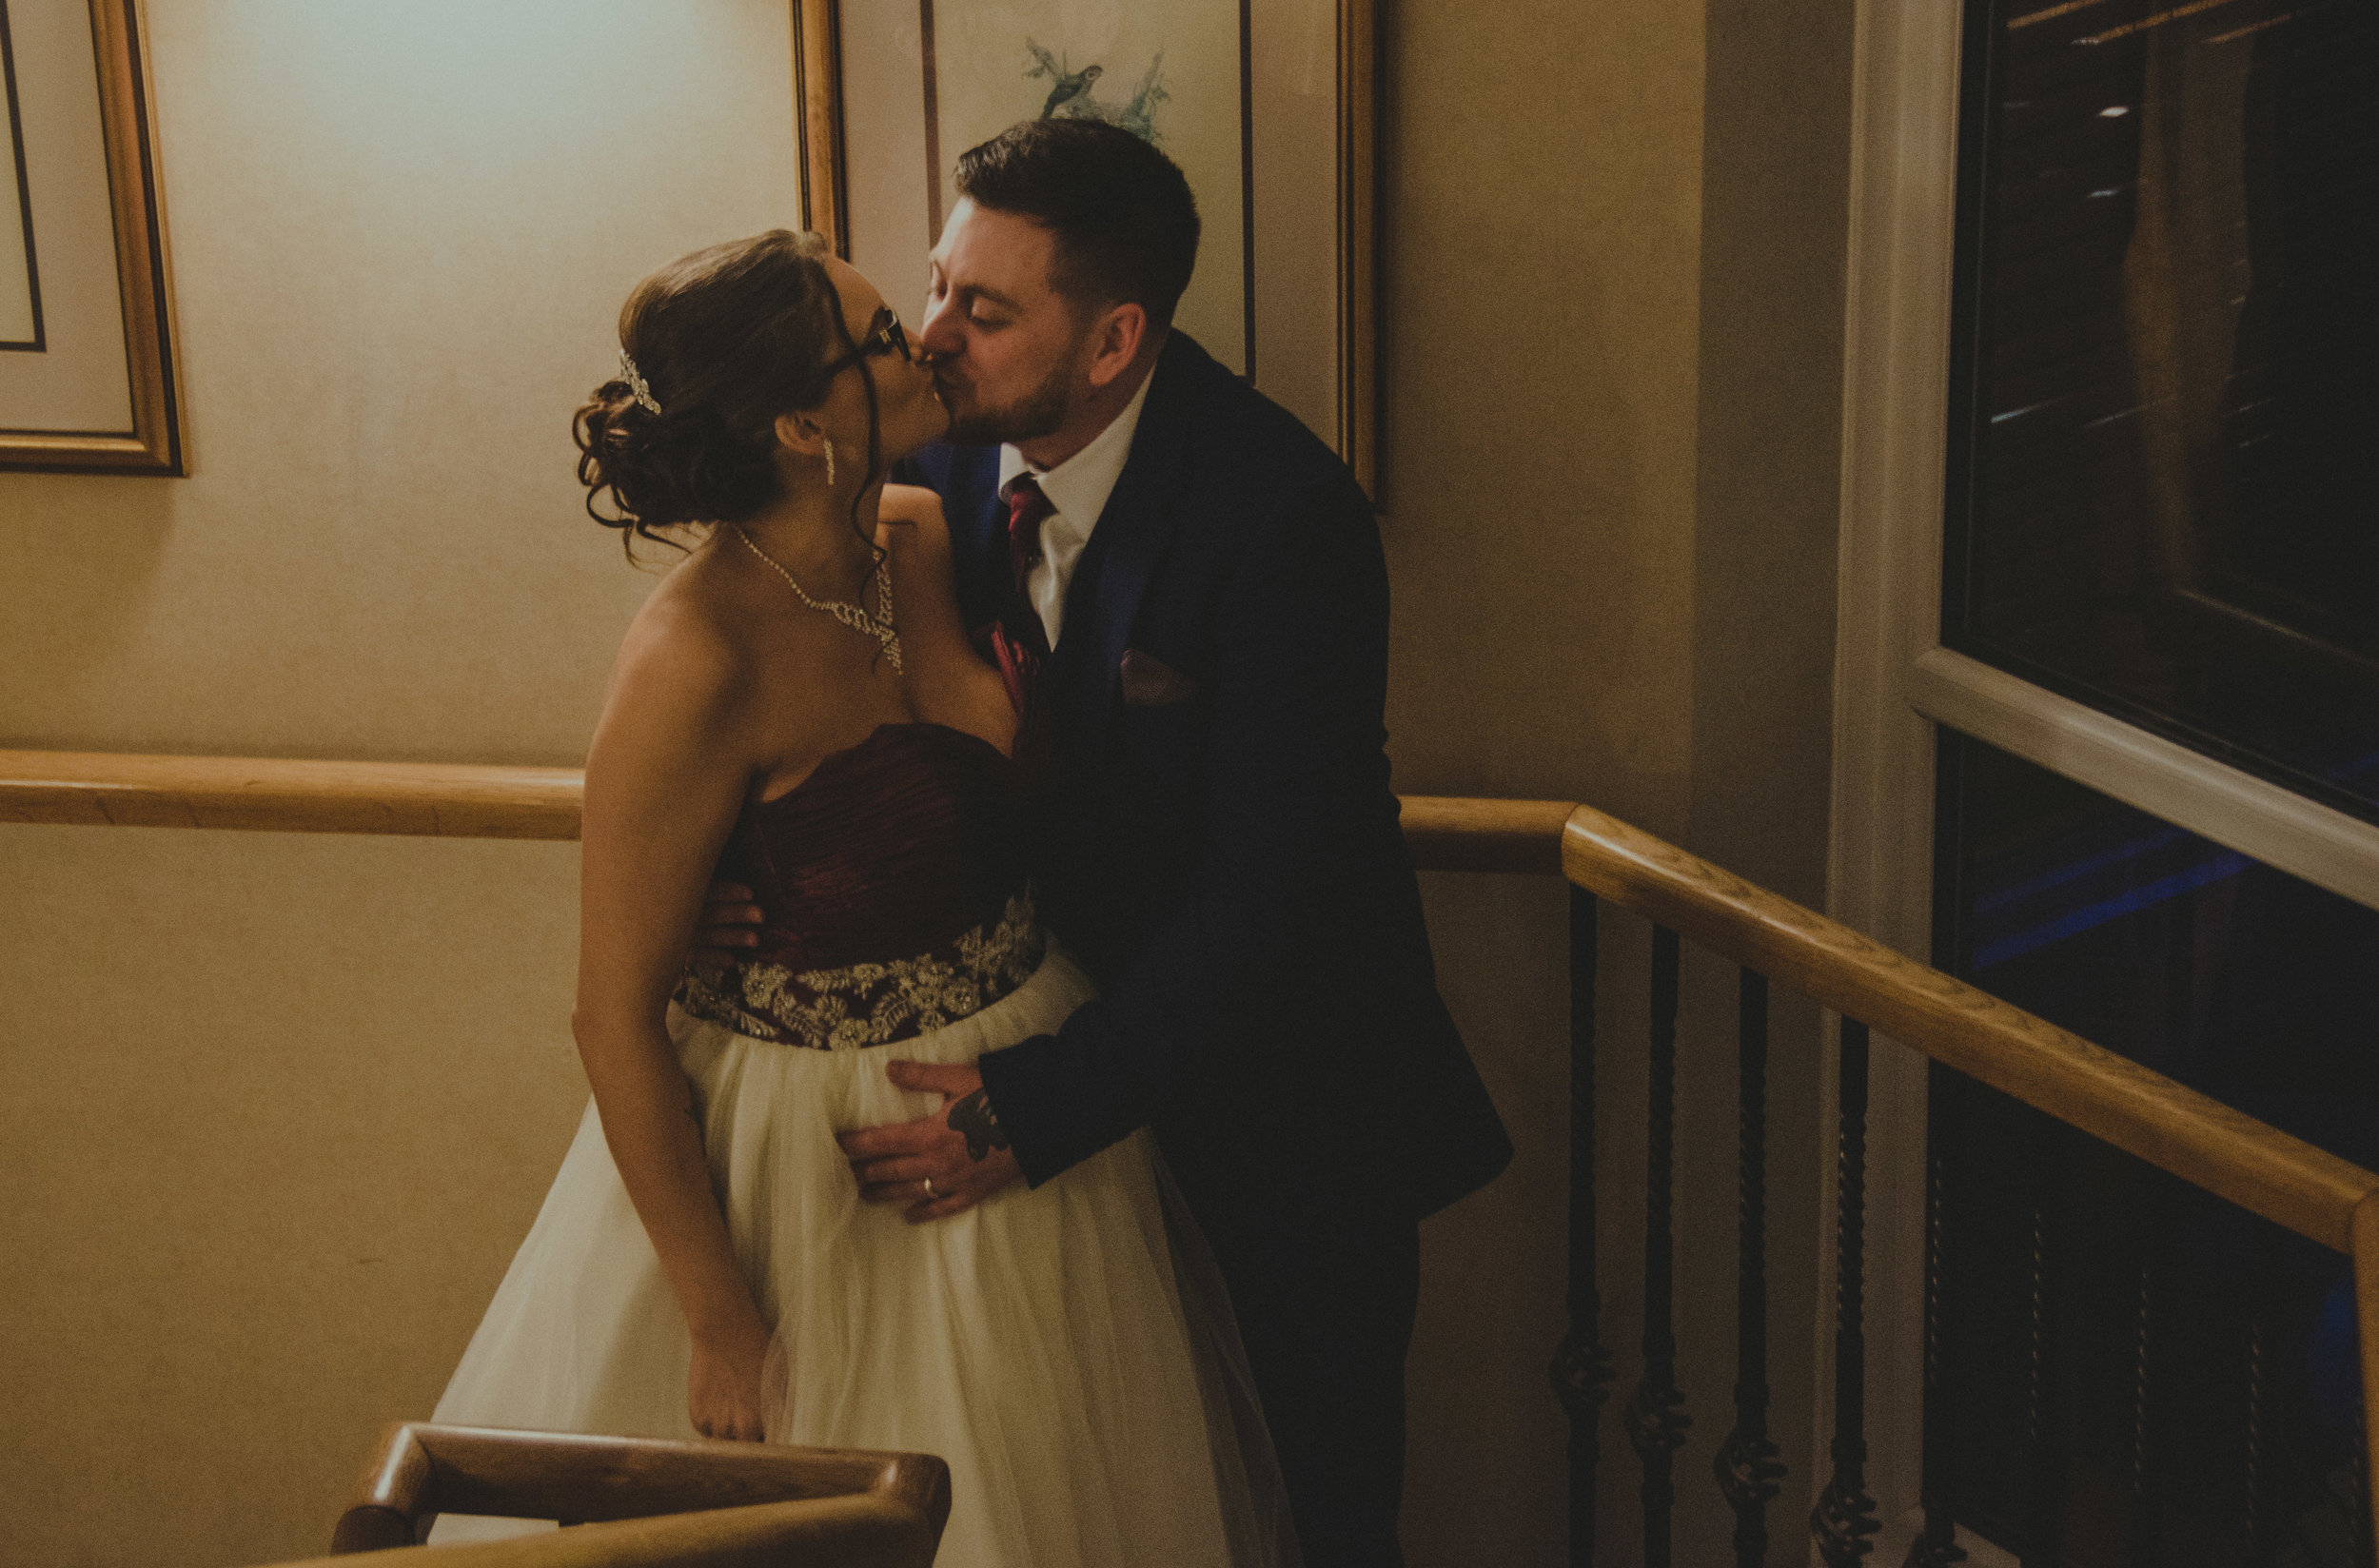 Lancashire wedding photographer Abergele wedding photographer wedding photographer york wedding photographer leeds wedding photographer award winning wedding photographer (1 of 1).jpg